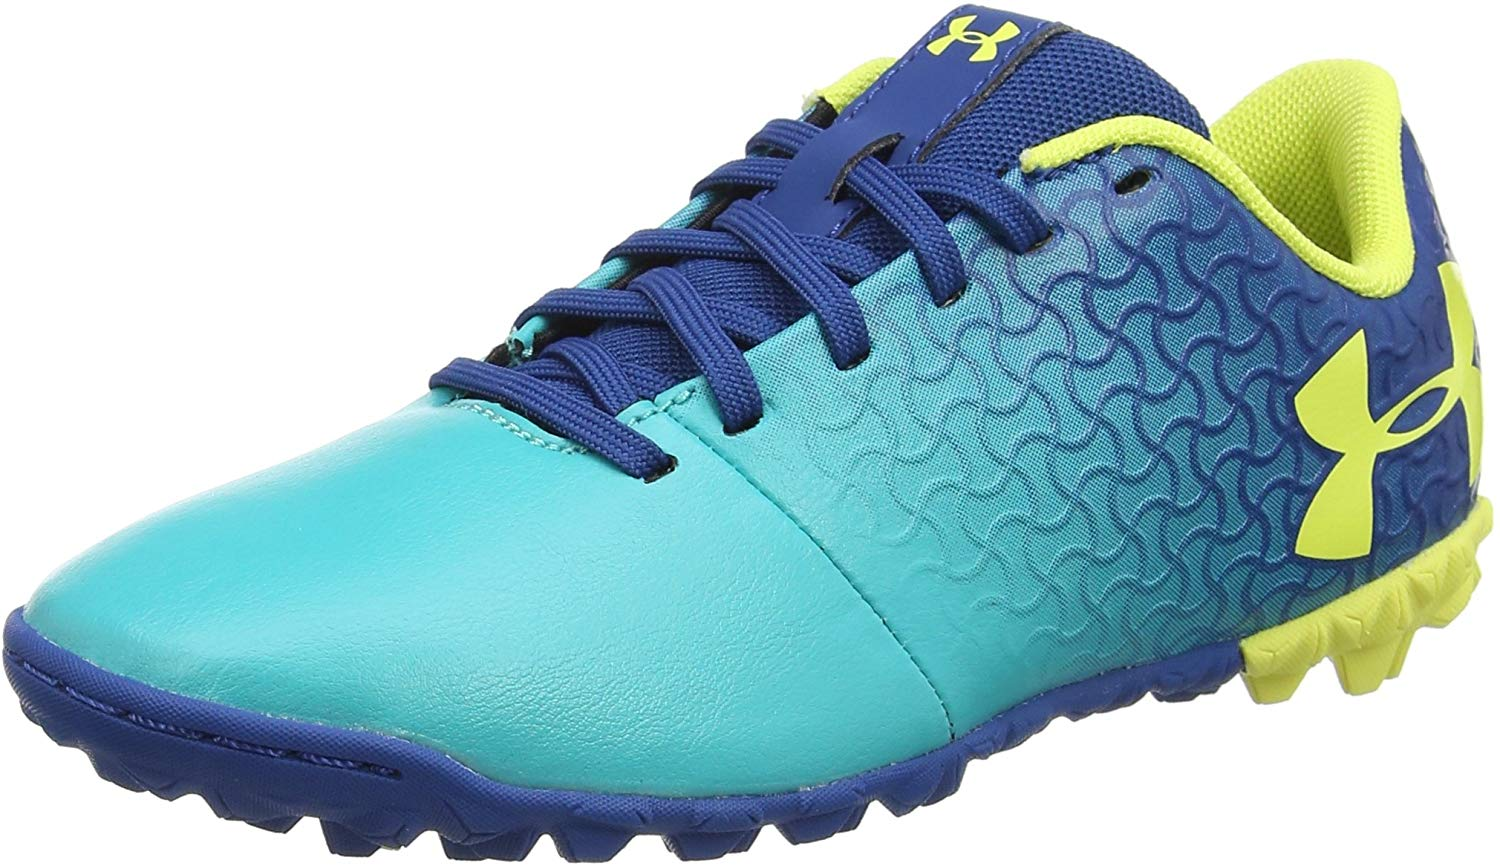 Under Armour Magnetico Select JR Turf